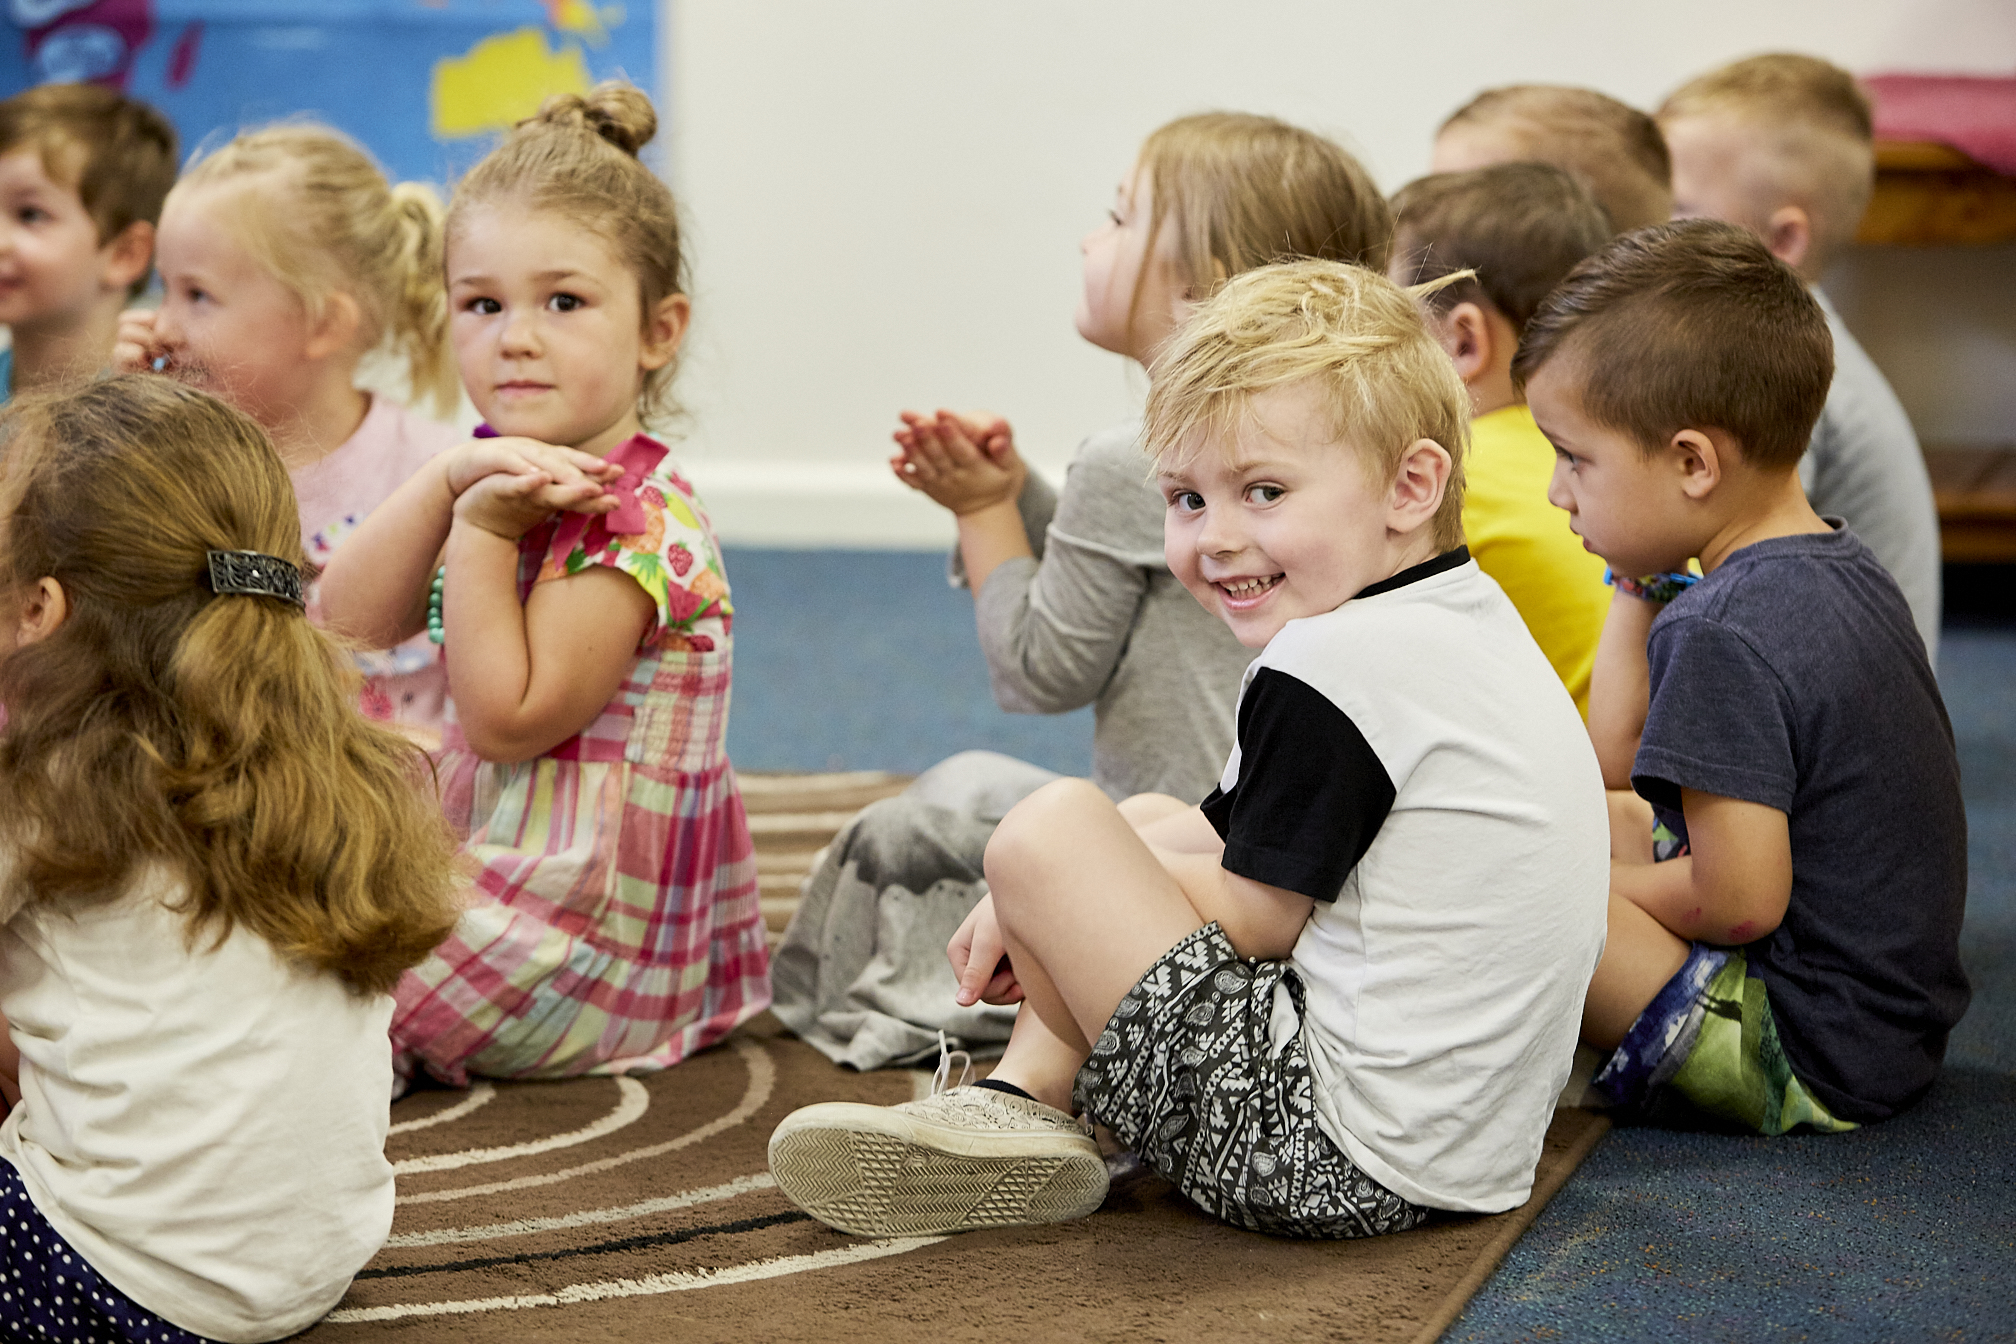 Group of children interacting in classroom setting